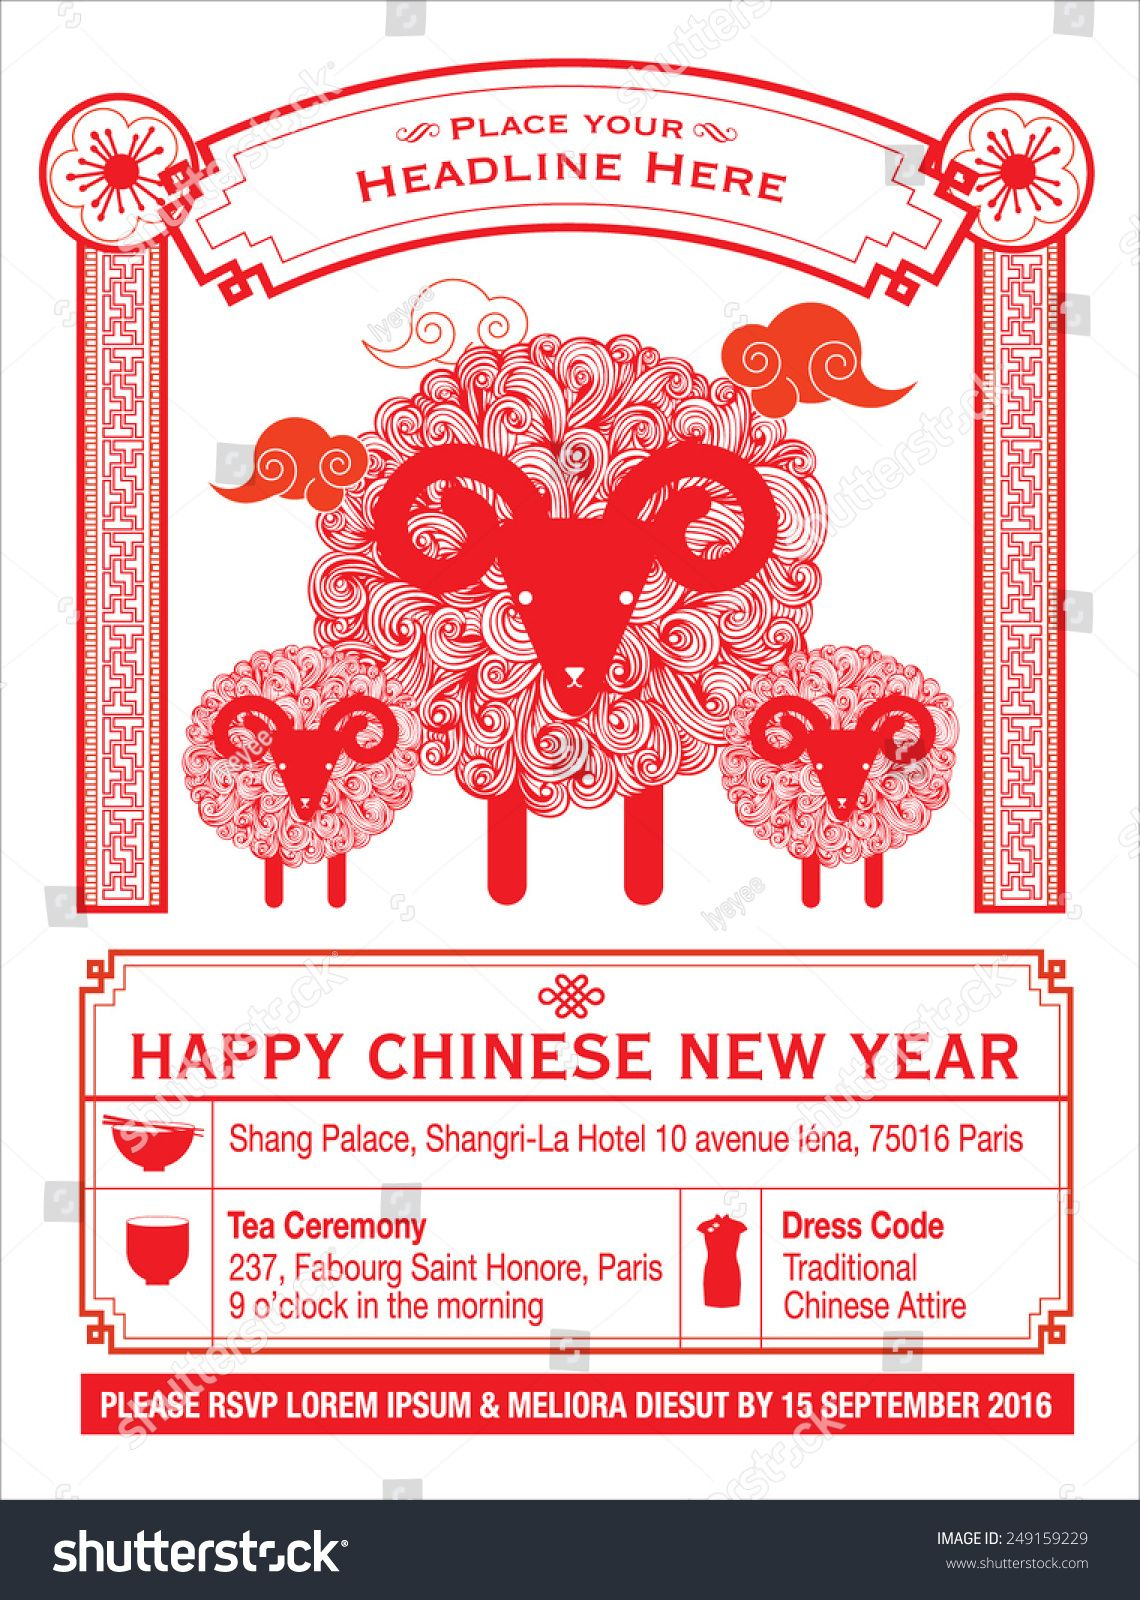 Chinese Calendar Chinese New Year Card Template Vector